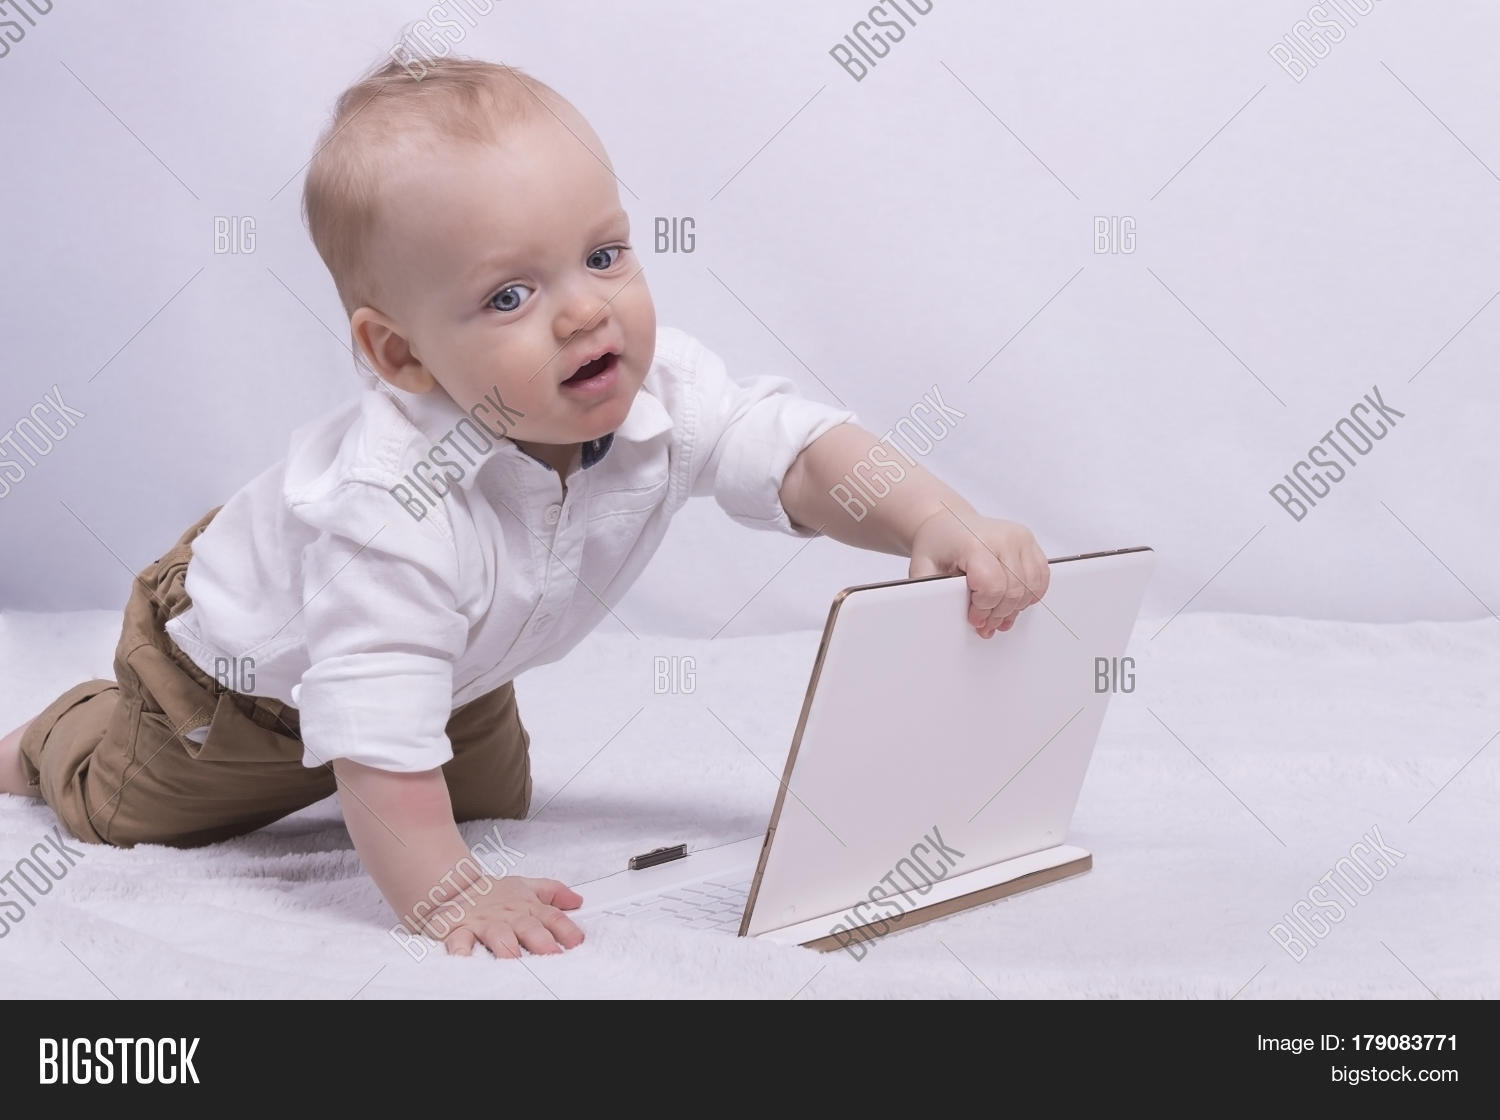 641d7c5d1bcc Cute 10-month-old Baby Image   Photo (Free Trial)